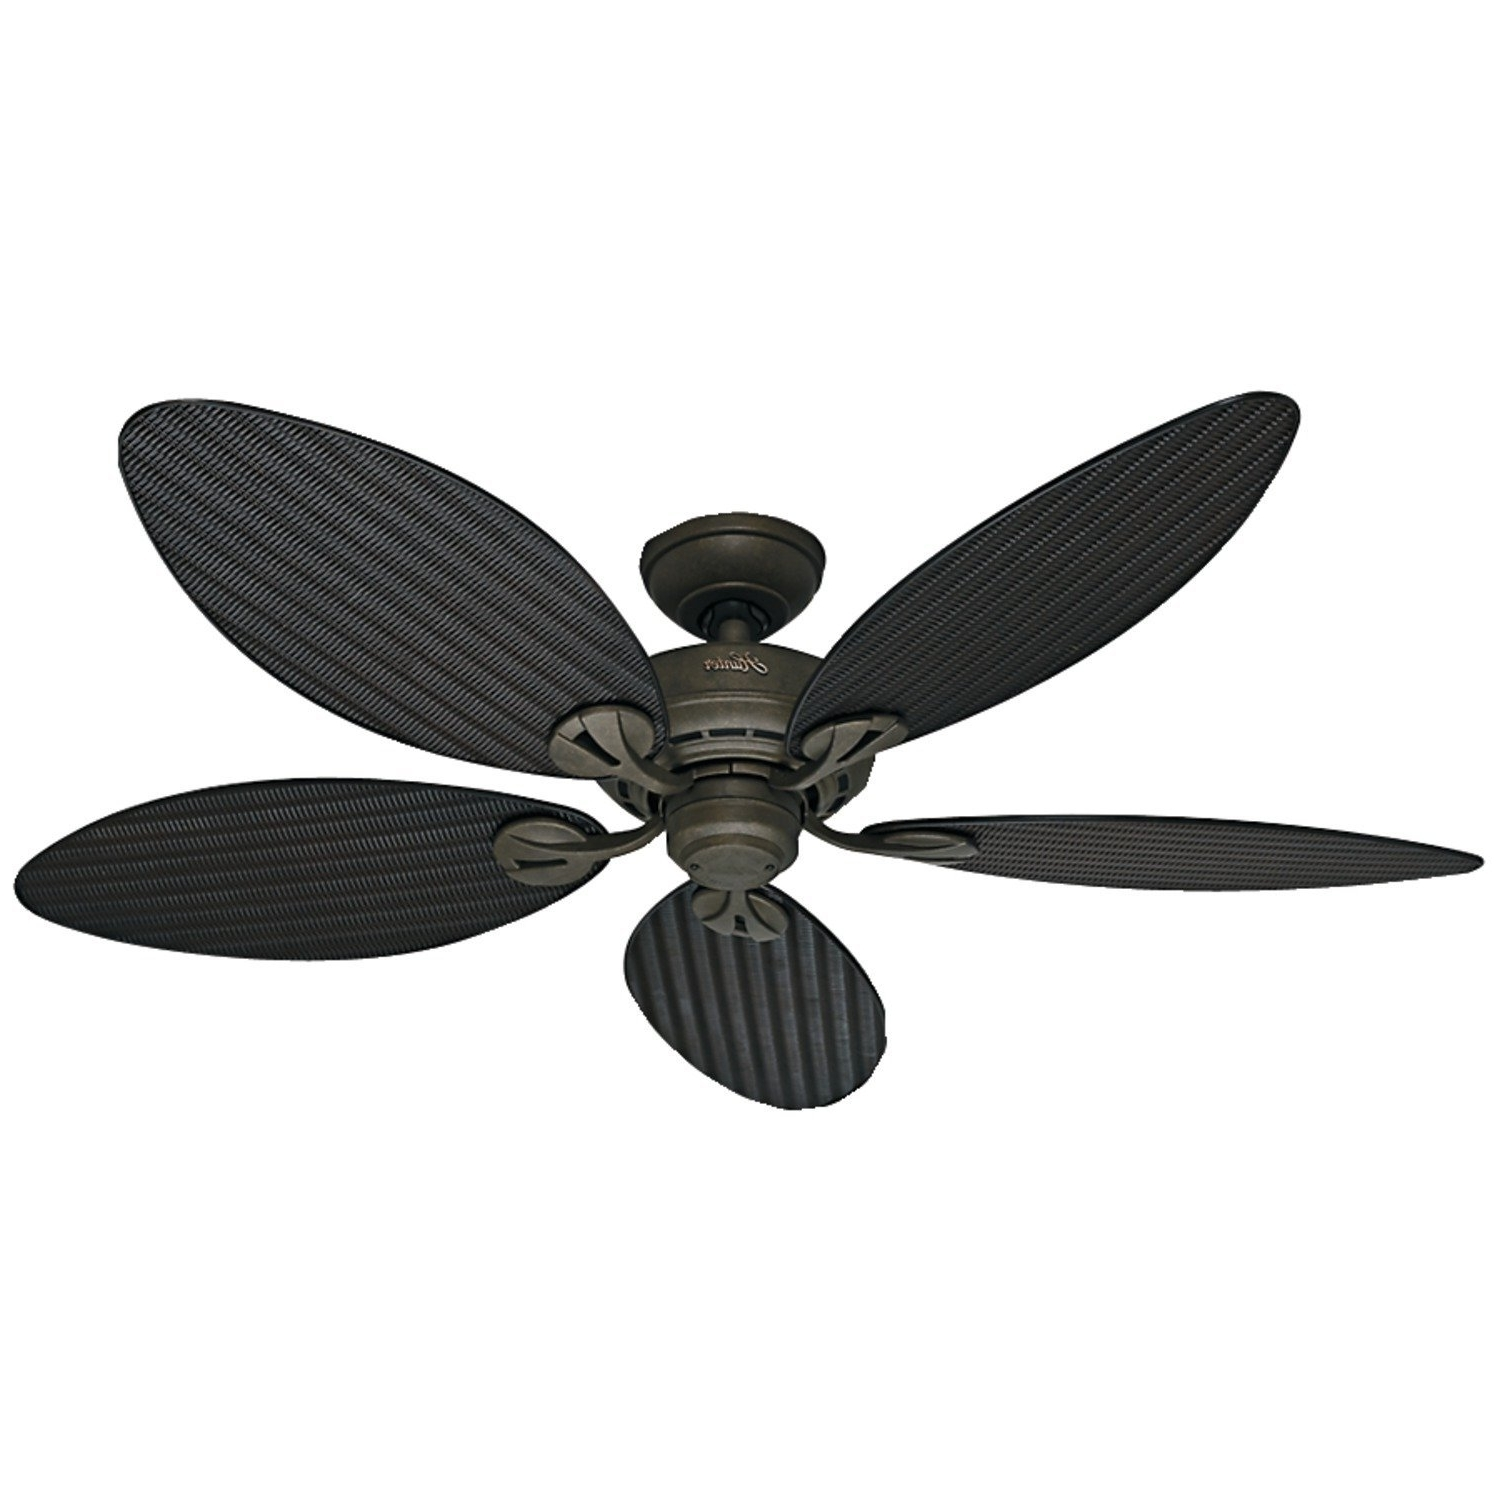 Bamboo Outdoor Ceiling Fans Within Widely Used Ceiling: Marvellous Ceiling Fans With Leaf Shaped Blades Wicker (View 5 of 20)